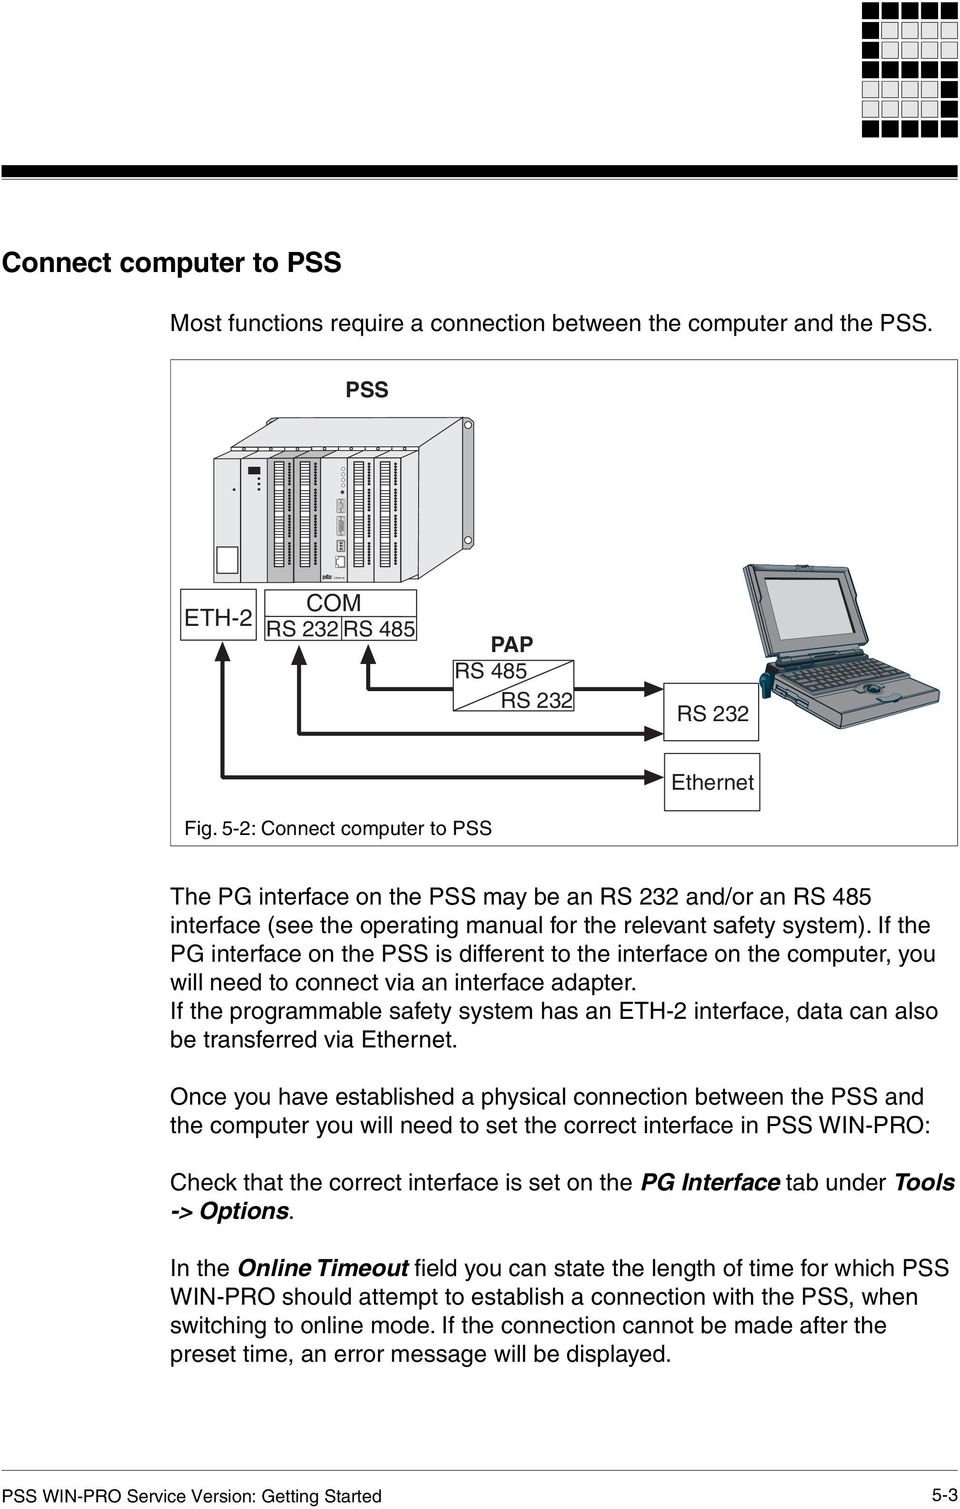 If the PG interface on the PSS is different to the interface on the computer, you will need to connect via an interface adapter.